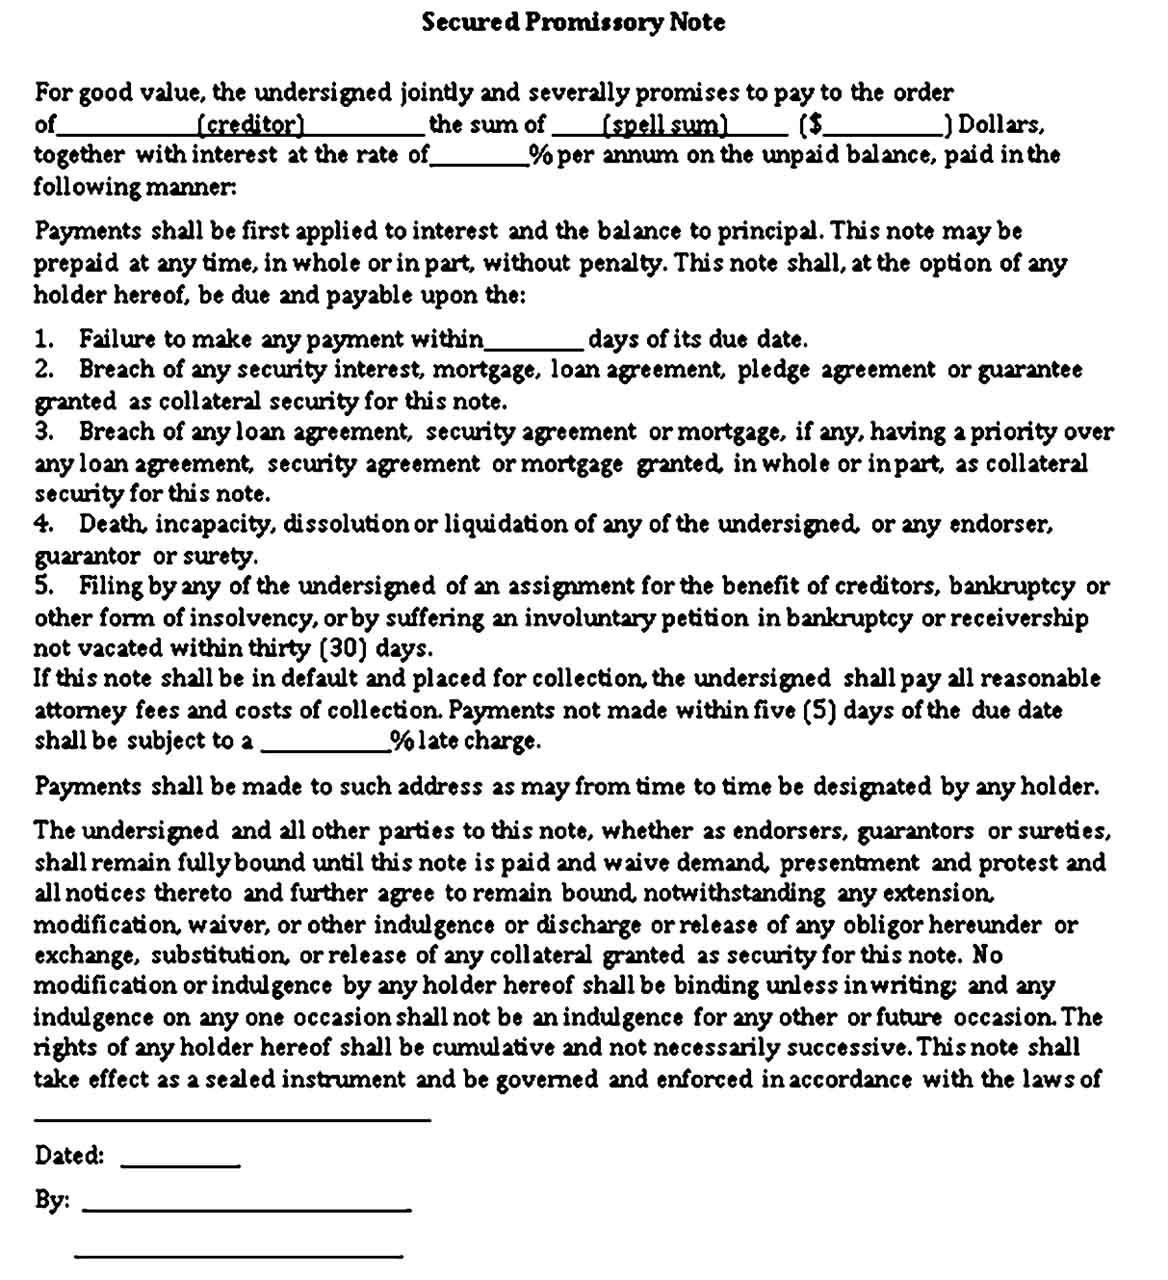 Sample Secured Promissory Note